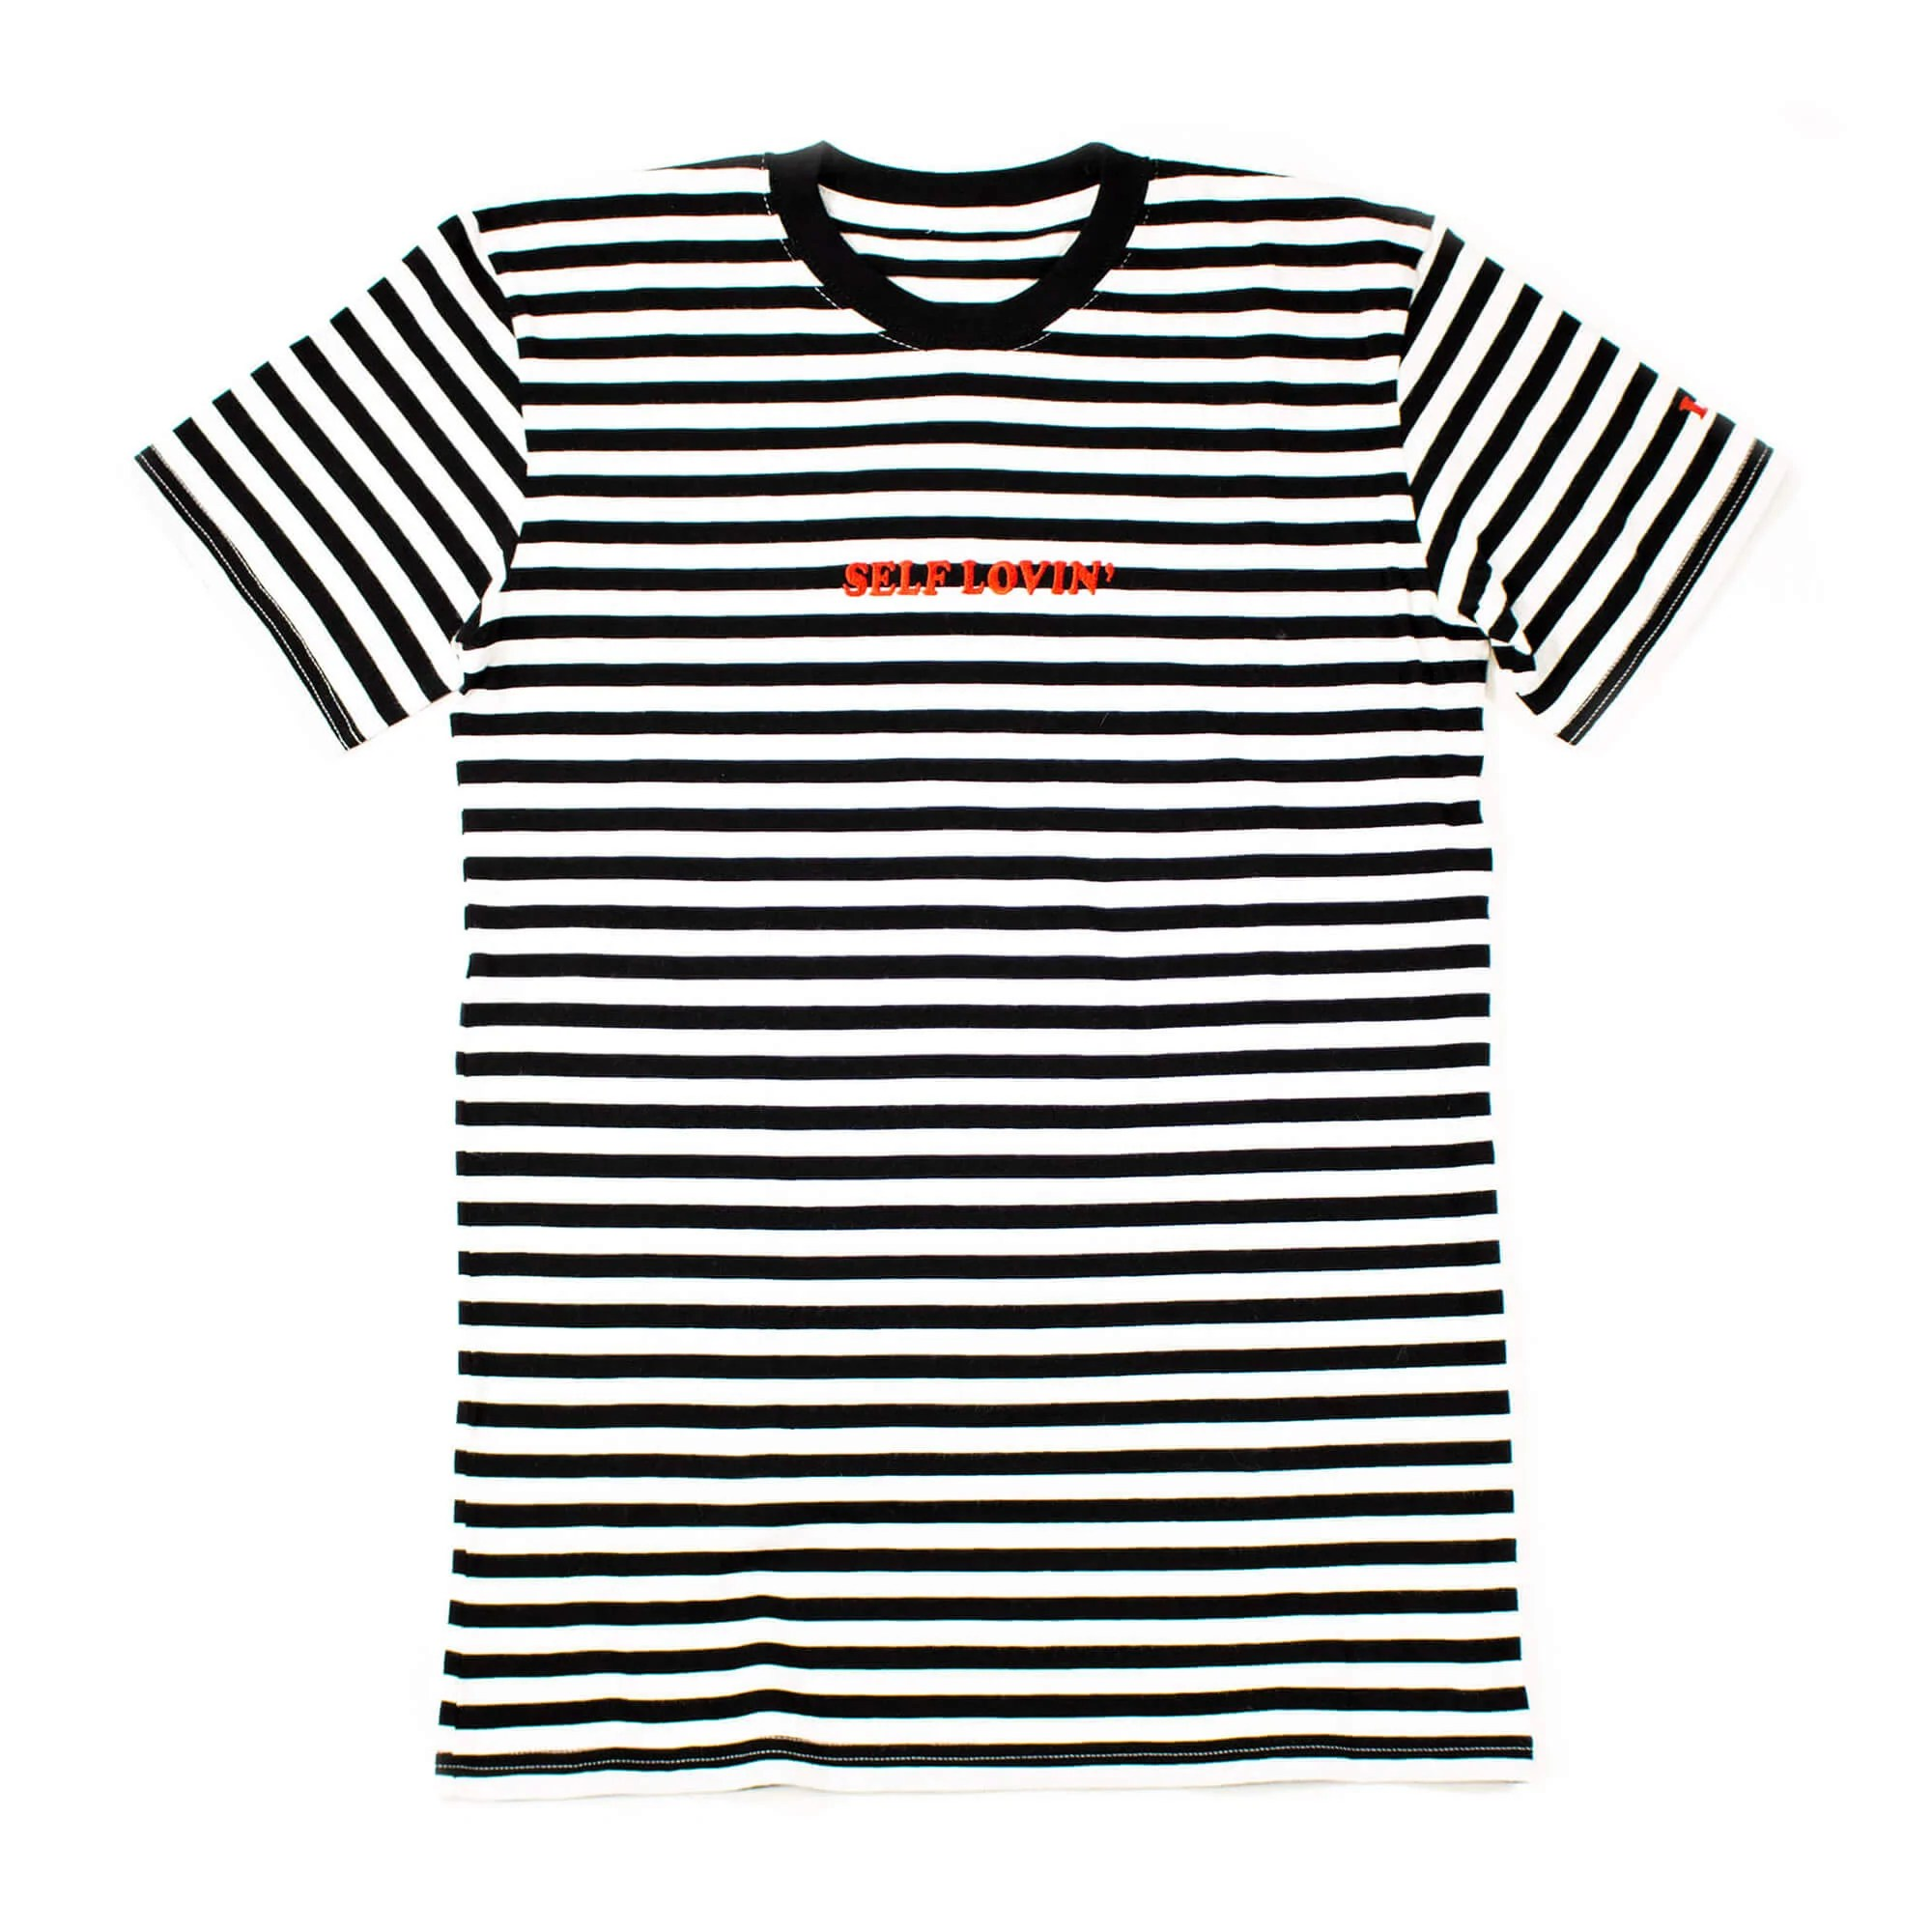 Self Lovin' Striped Tee - Black/White – Liza Koshy